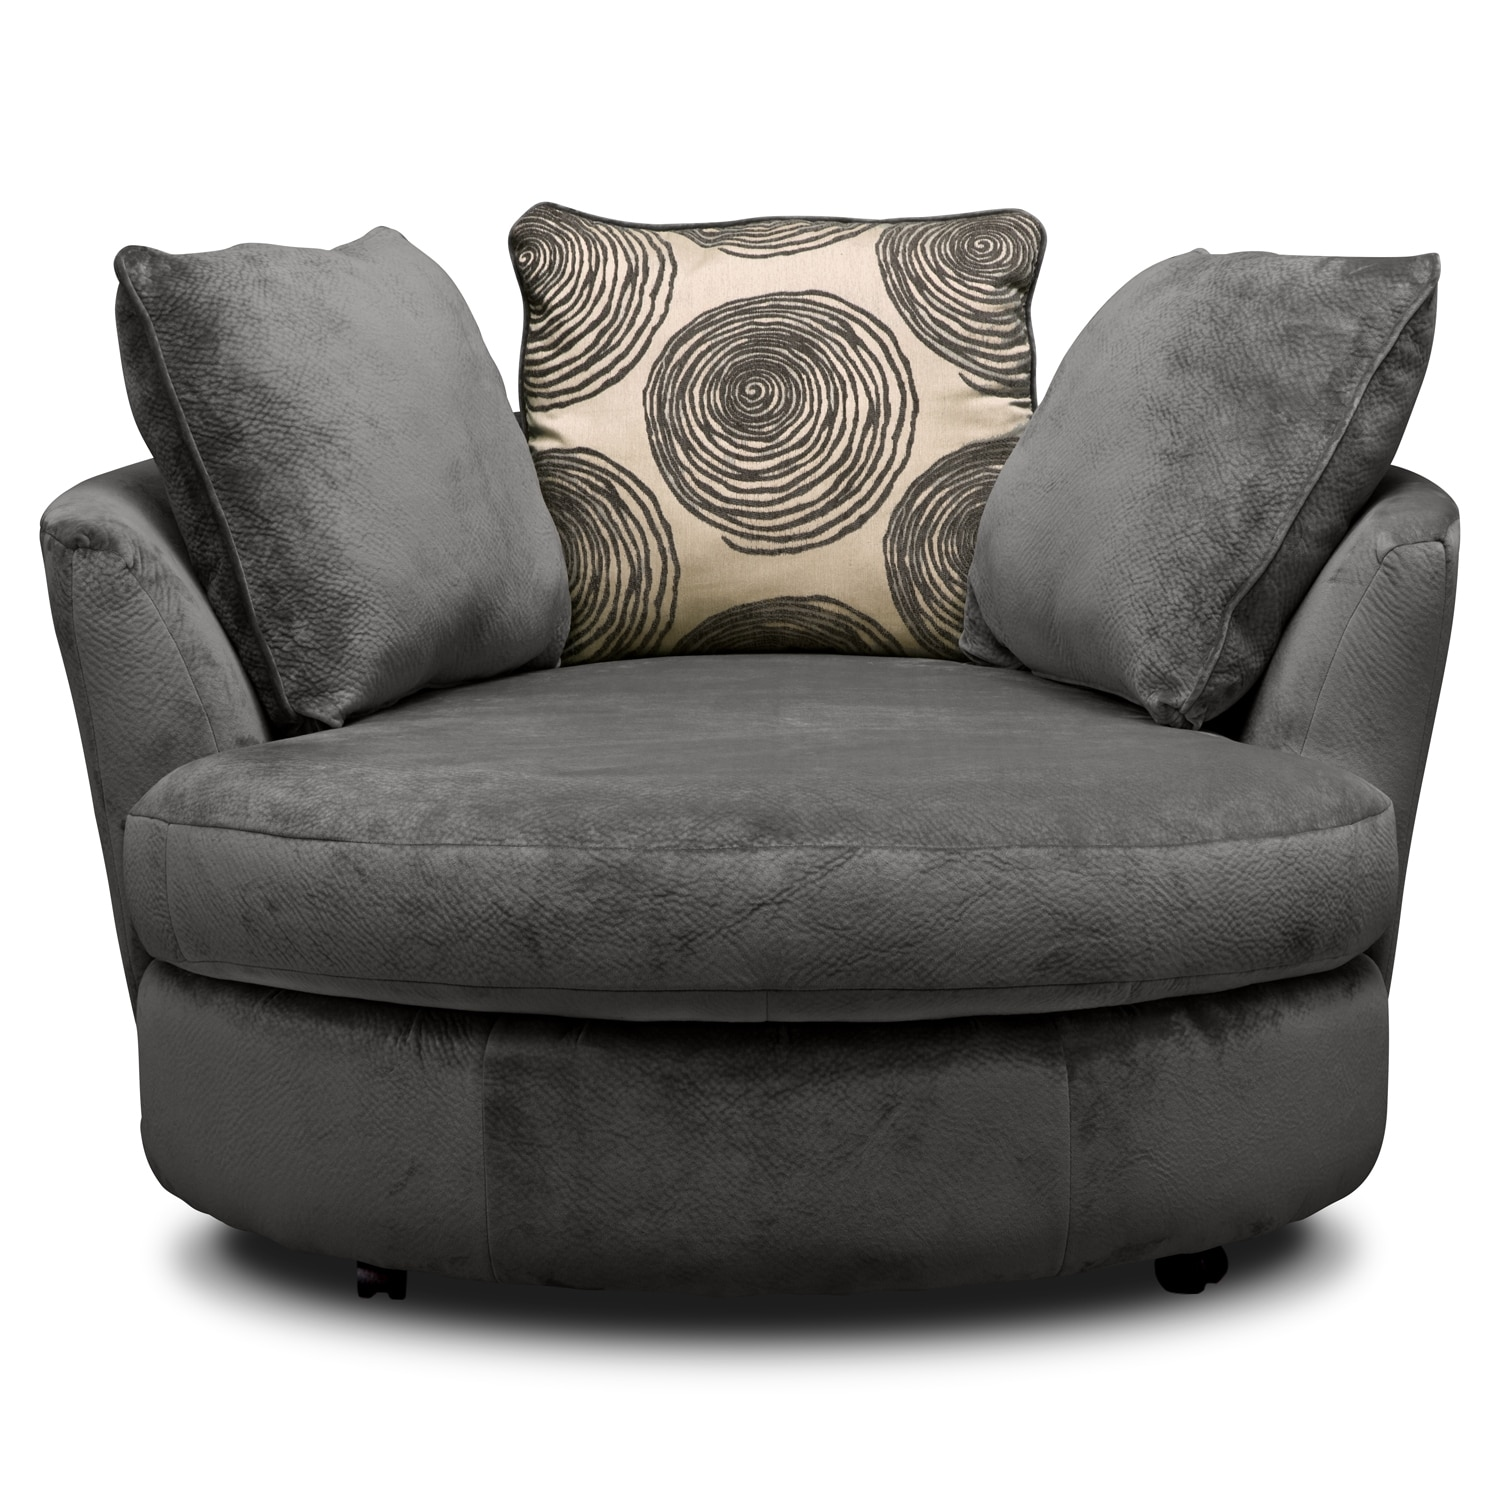 Cordoba Gray Upholstery Swivel Chair